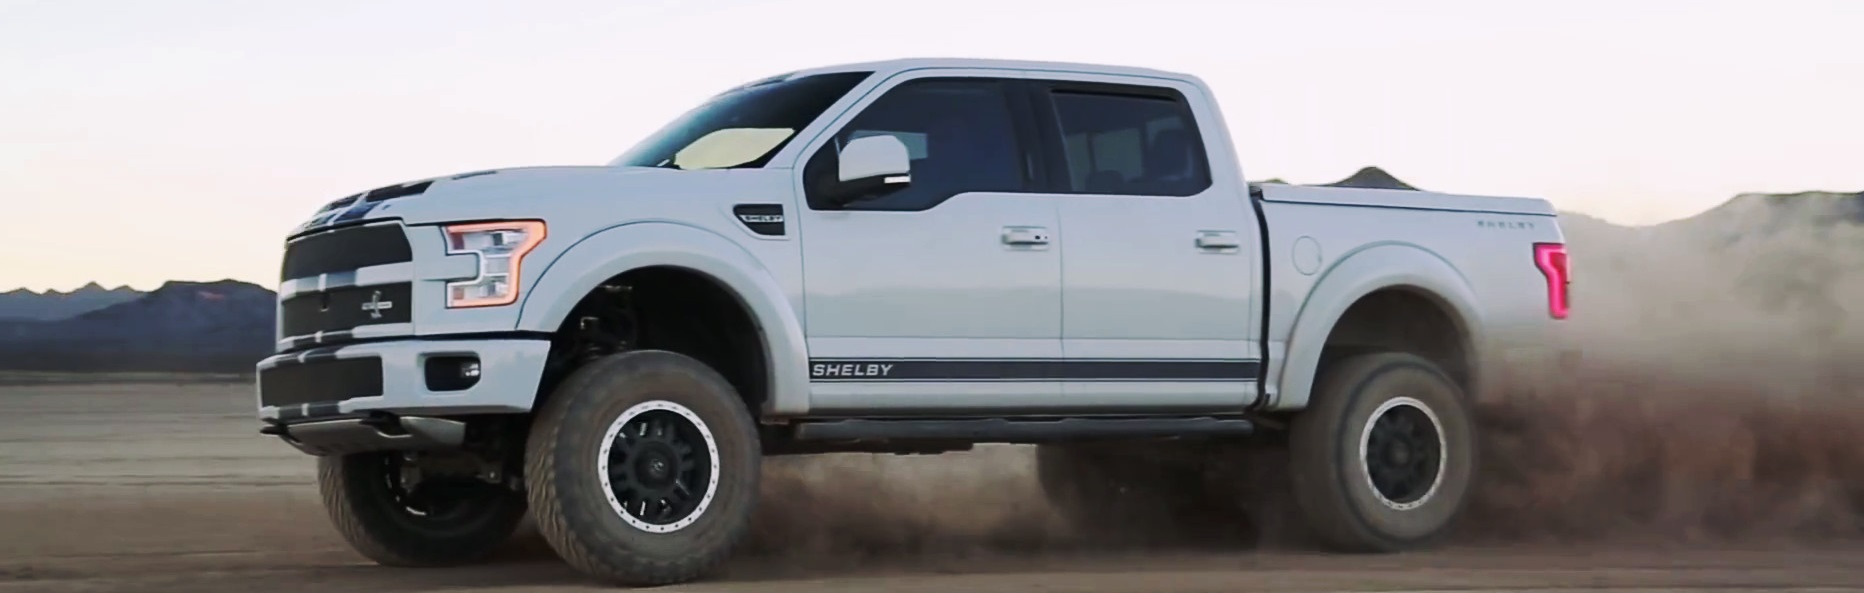 ram truck videos with Ford Shelby F150 Trucks on Gm Unveils 2019 Chevrolet Silverado besides Dodge Ram Lug Nuts also Watch moreover Watch as well .